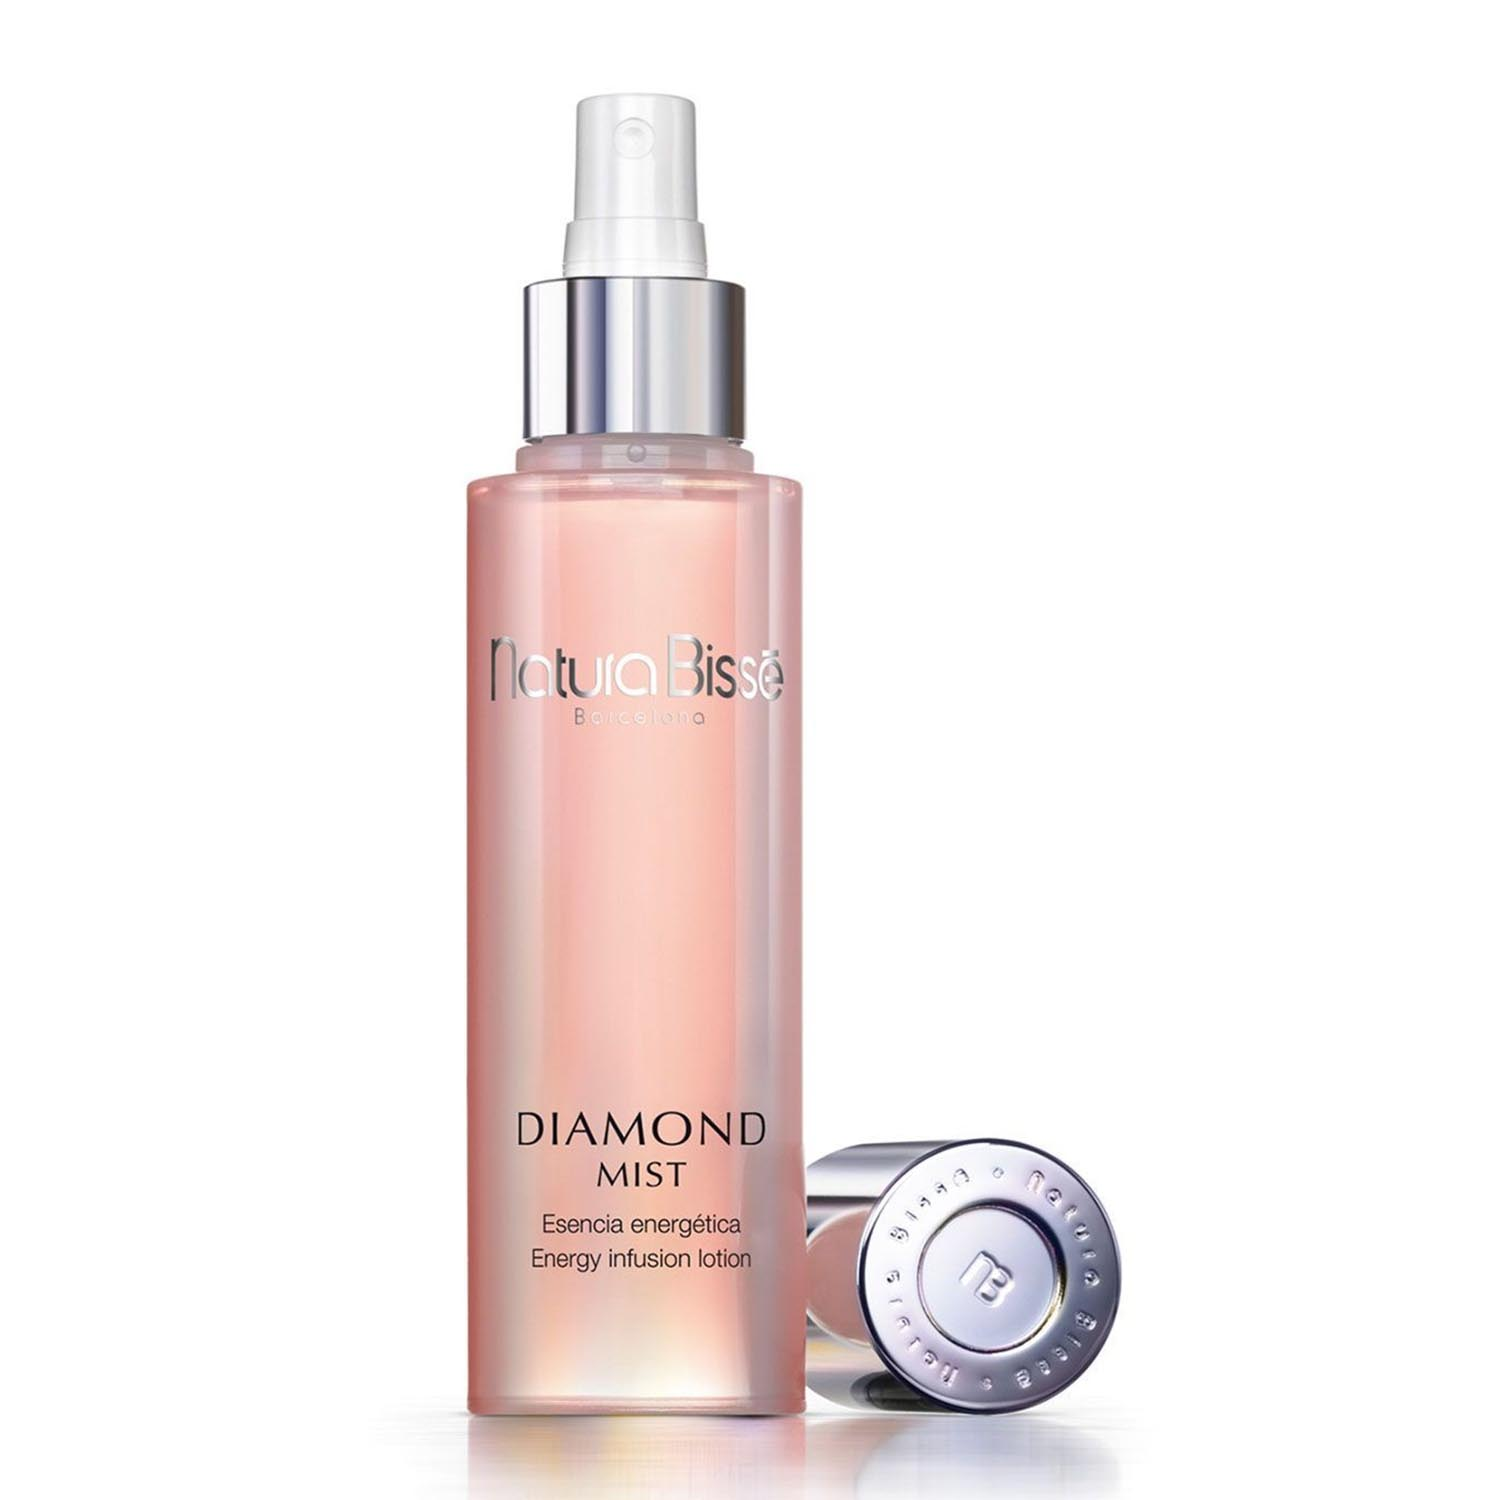 Natura bisse diamond mist 200ml